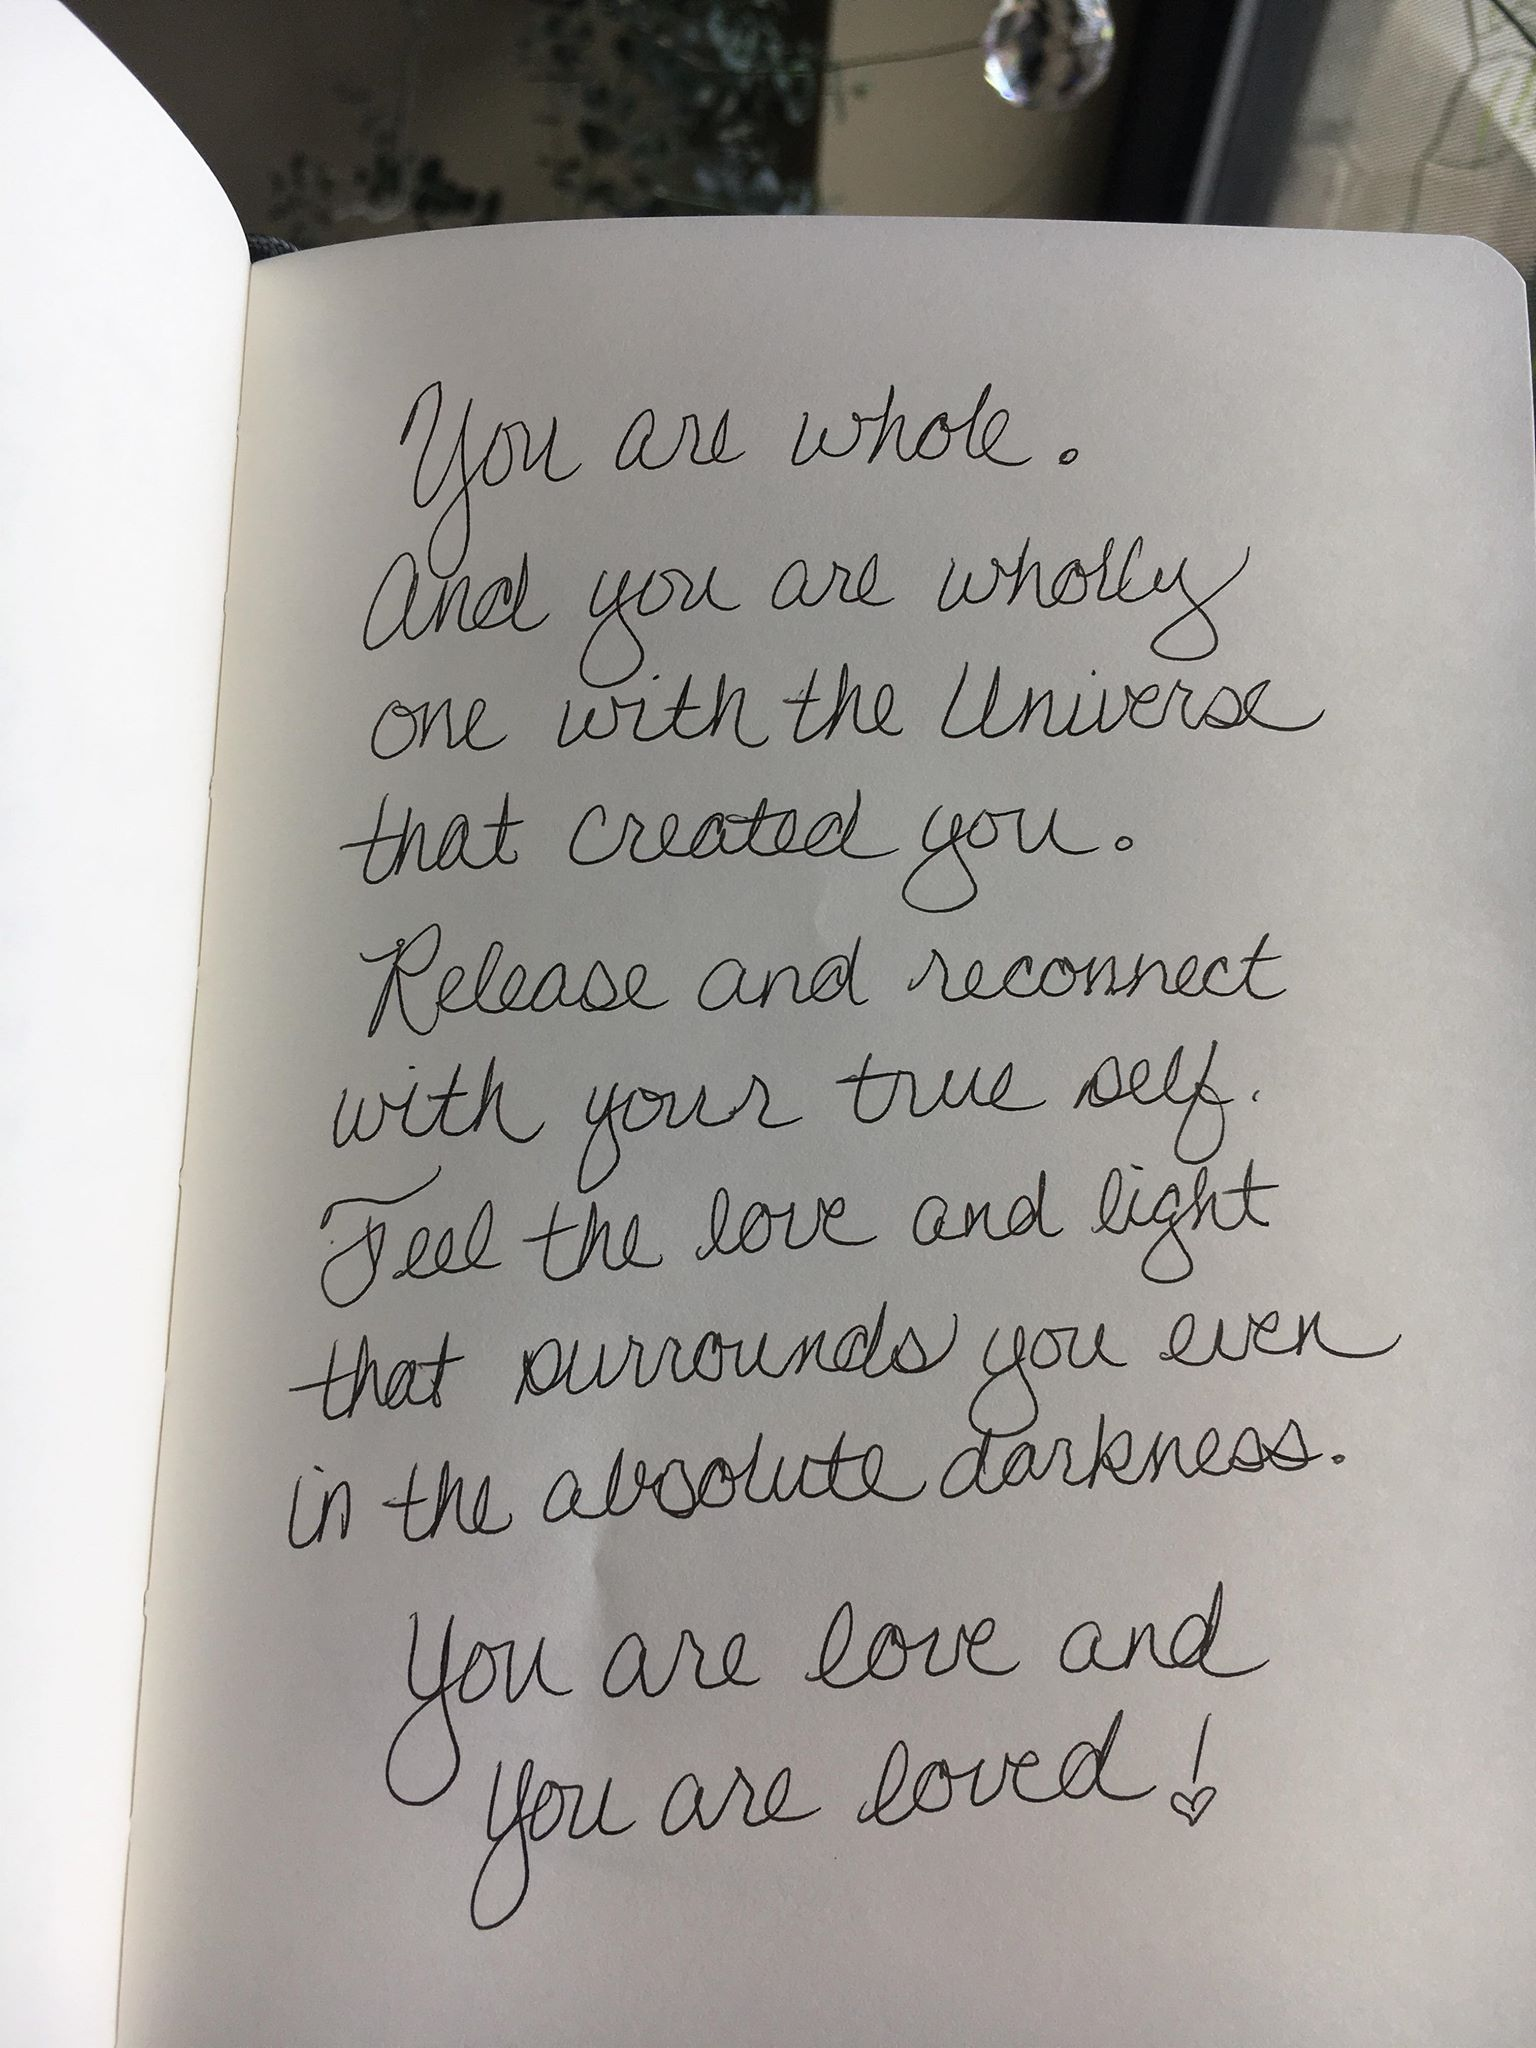 You are whole. And you are wholly one with the Universe that created you. Release and reconnect with your true self. Feel the love and light that surrounds you even in the absolute darkness. You are love and you are loved!